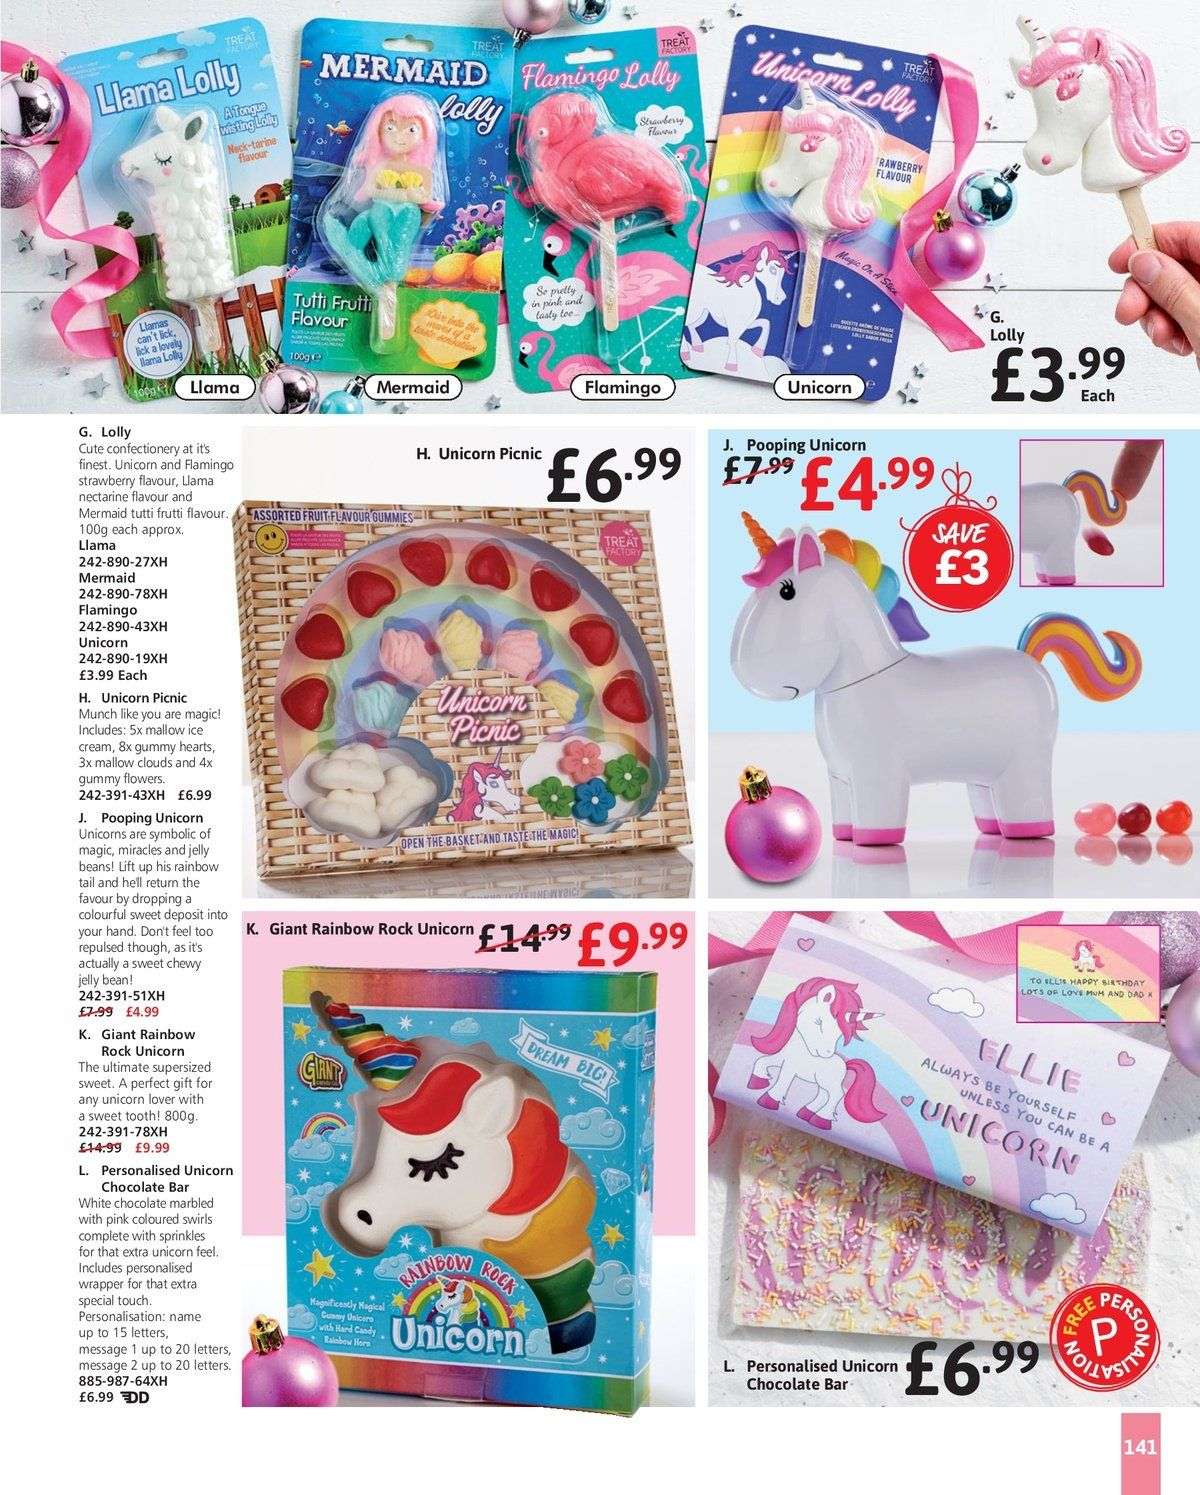 Studio offer  - 17.10.2018 - 11.12.2018 - Sales products - always, basket, beans, cream, flamingo, white chocolate, ice cream, chocolate, candy, gummy, pen, sweet, chocolate bar, strawberry. Page 139.